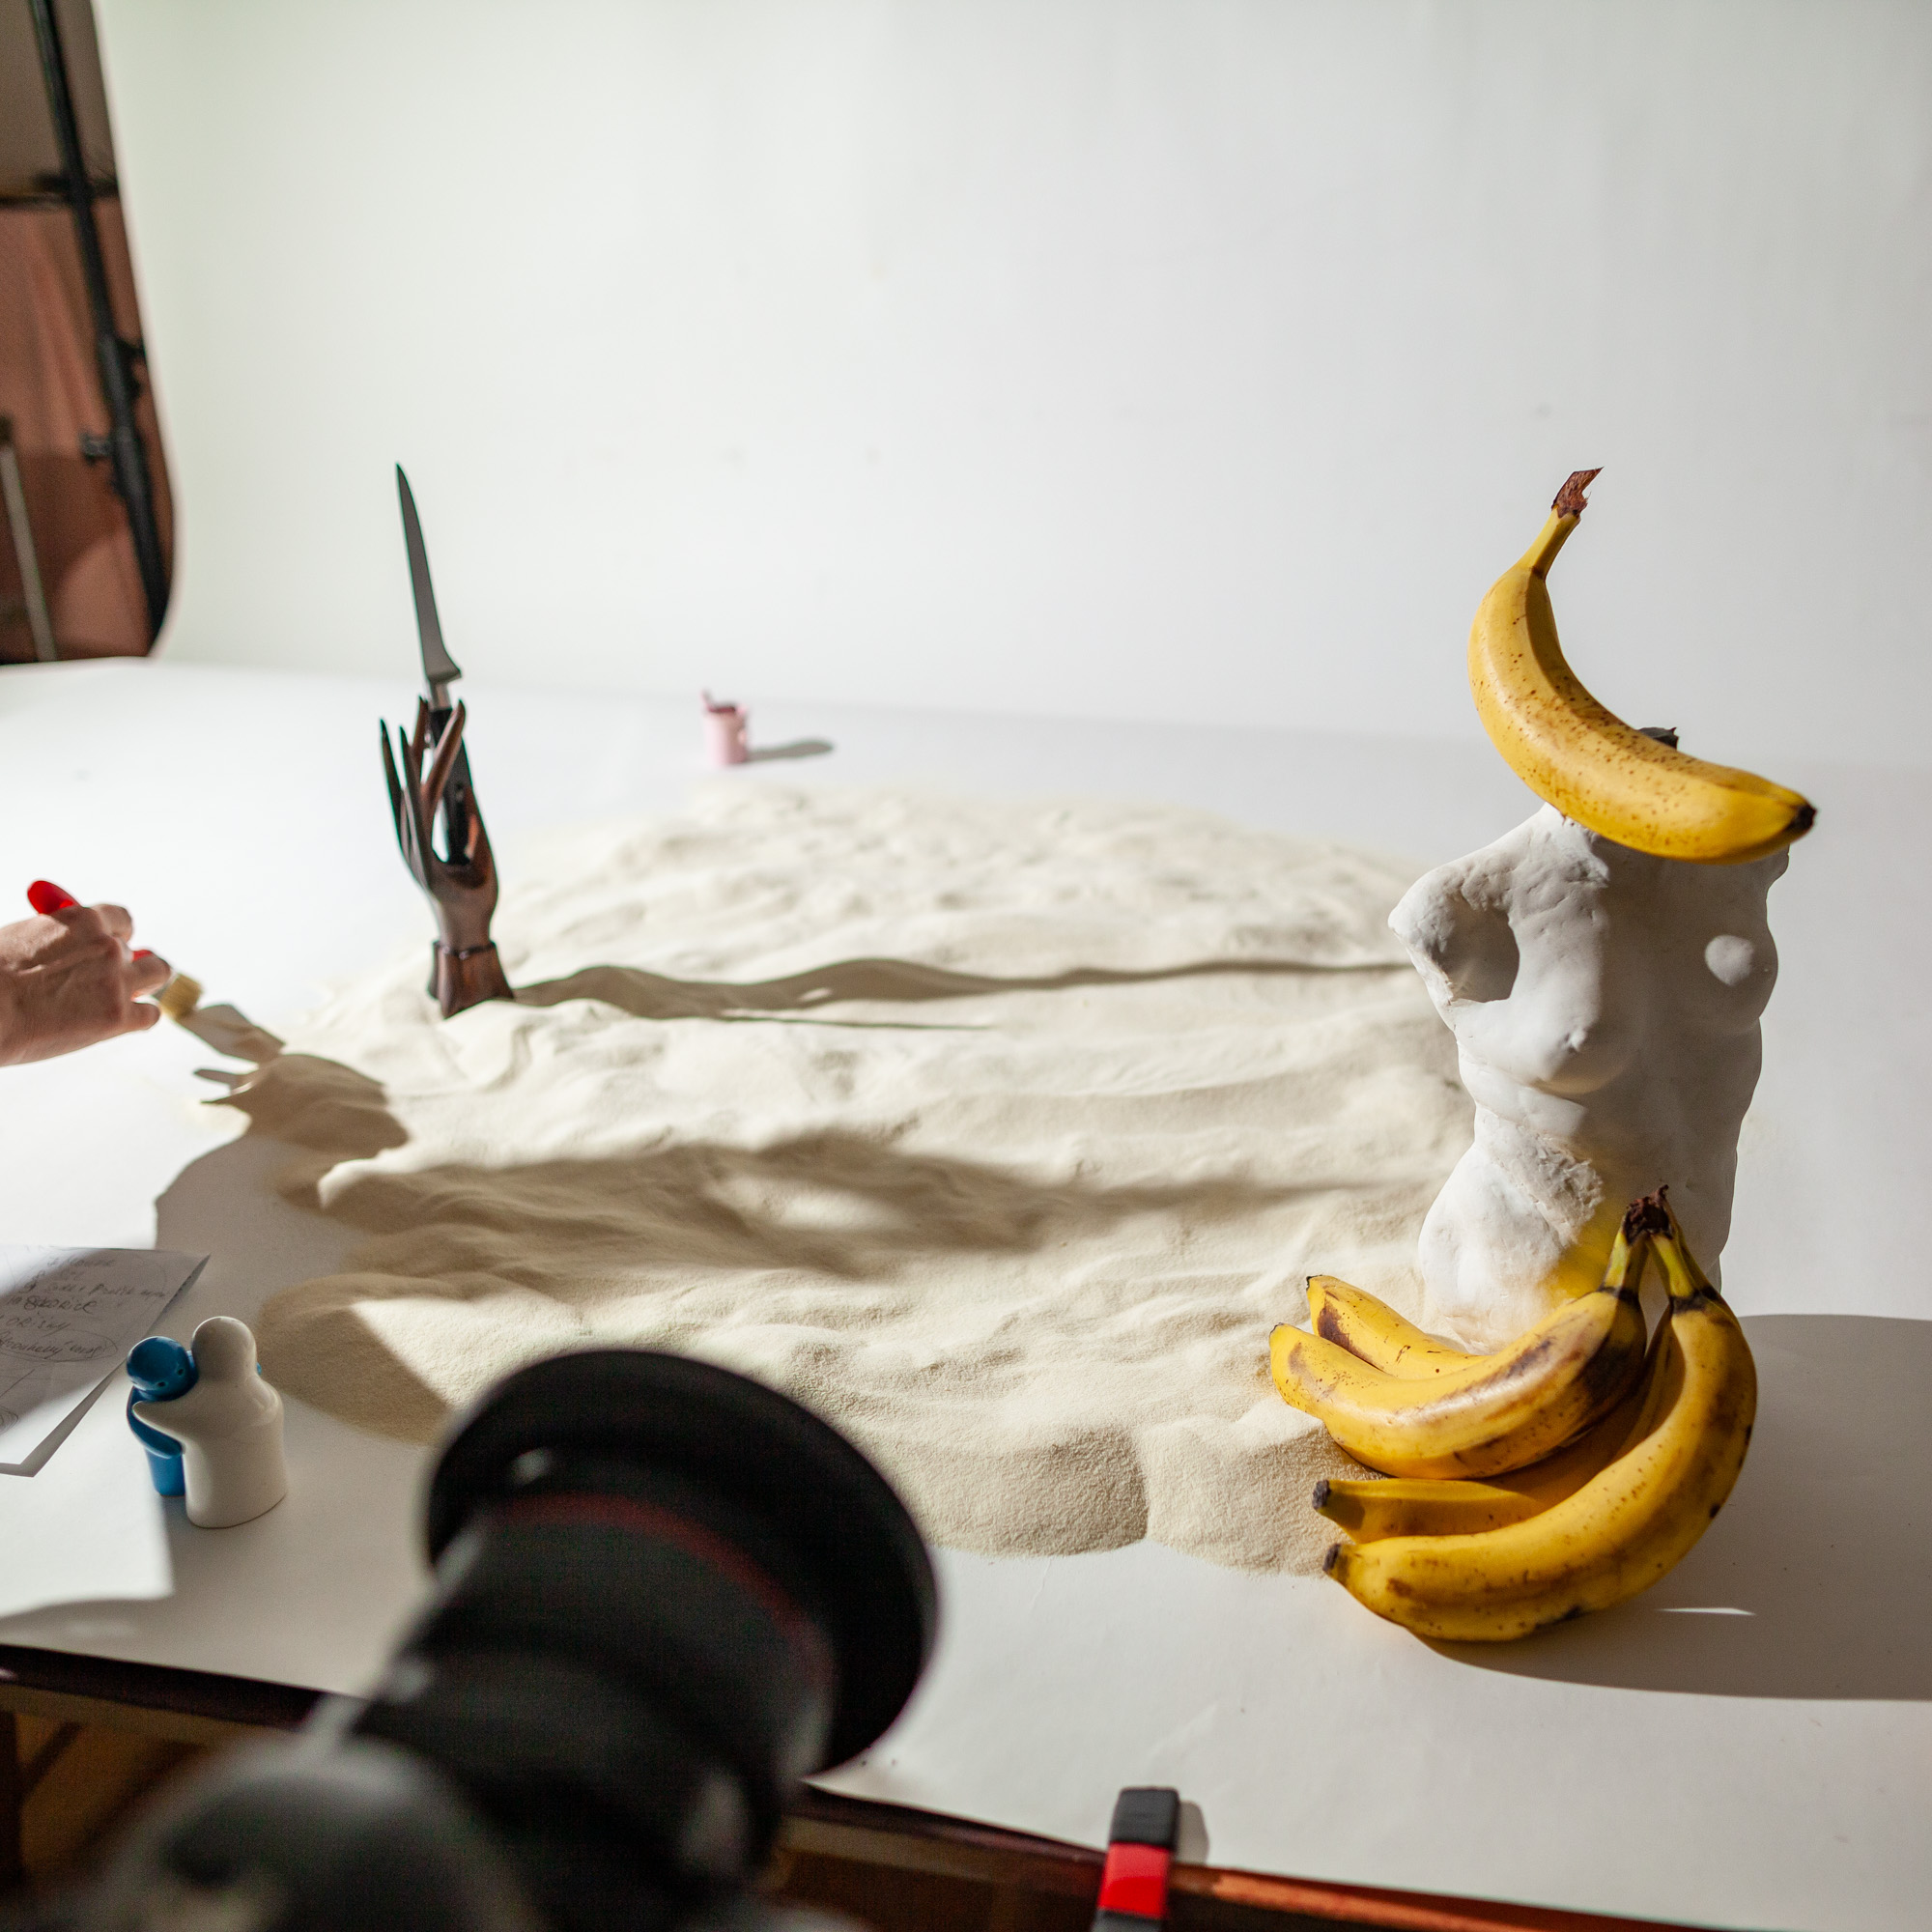 Behind the scenes of vegan banana bread recipe. The photo shows the preparation of a scene. A statue of a naked women's torso decorated with bananas is seen as well as a wooden hand holding a knife.